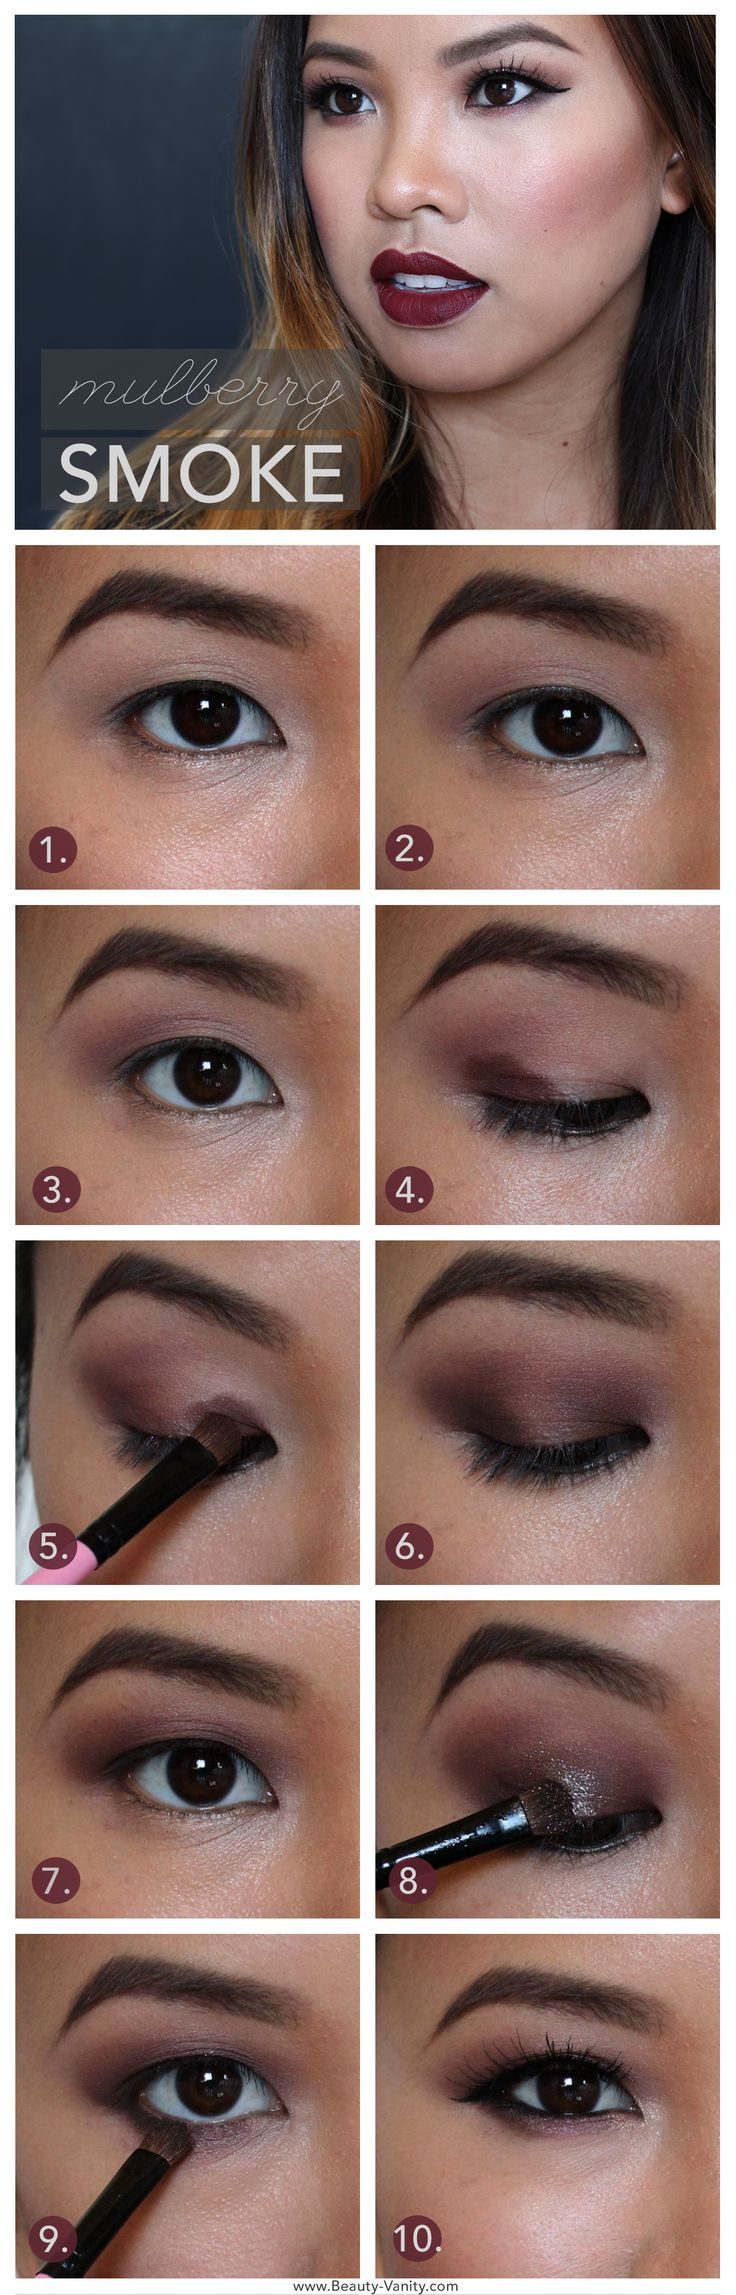 Beauty Vanity | Mulberry Smoke: Dark Lips and Berry Lids Makeup Tutorial for Asian Eyes